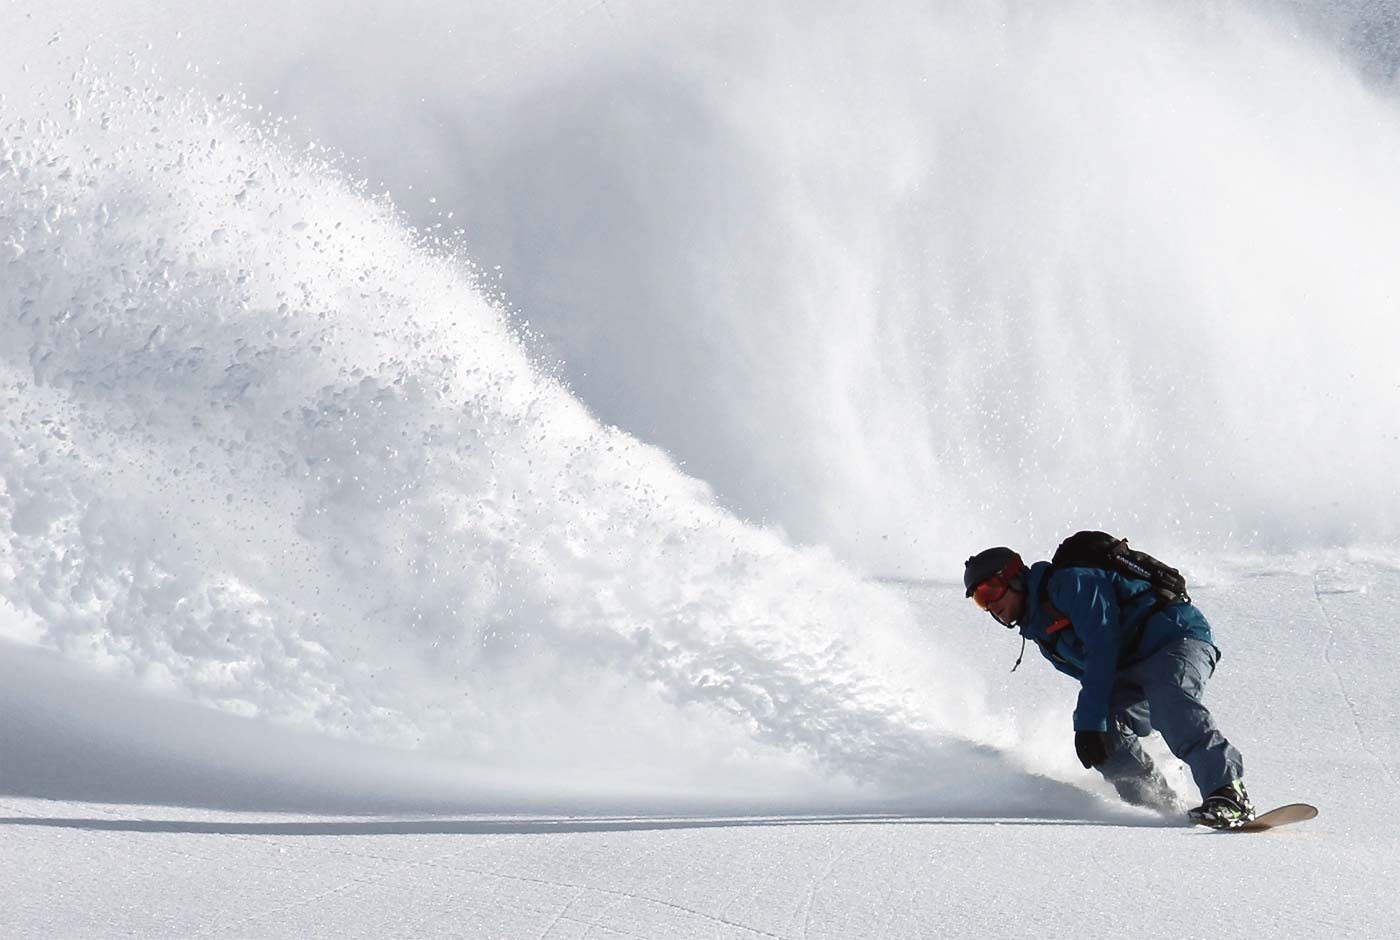 Carving Through the Powder